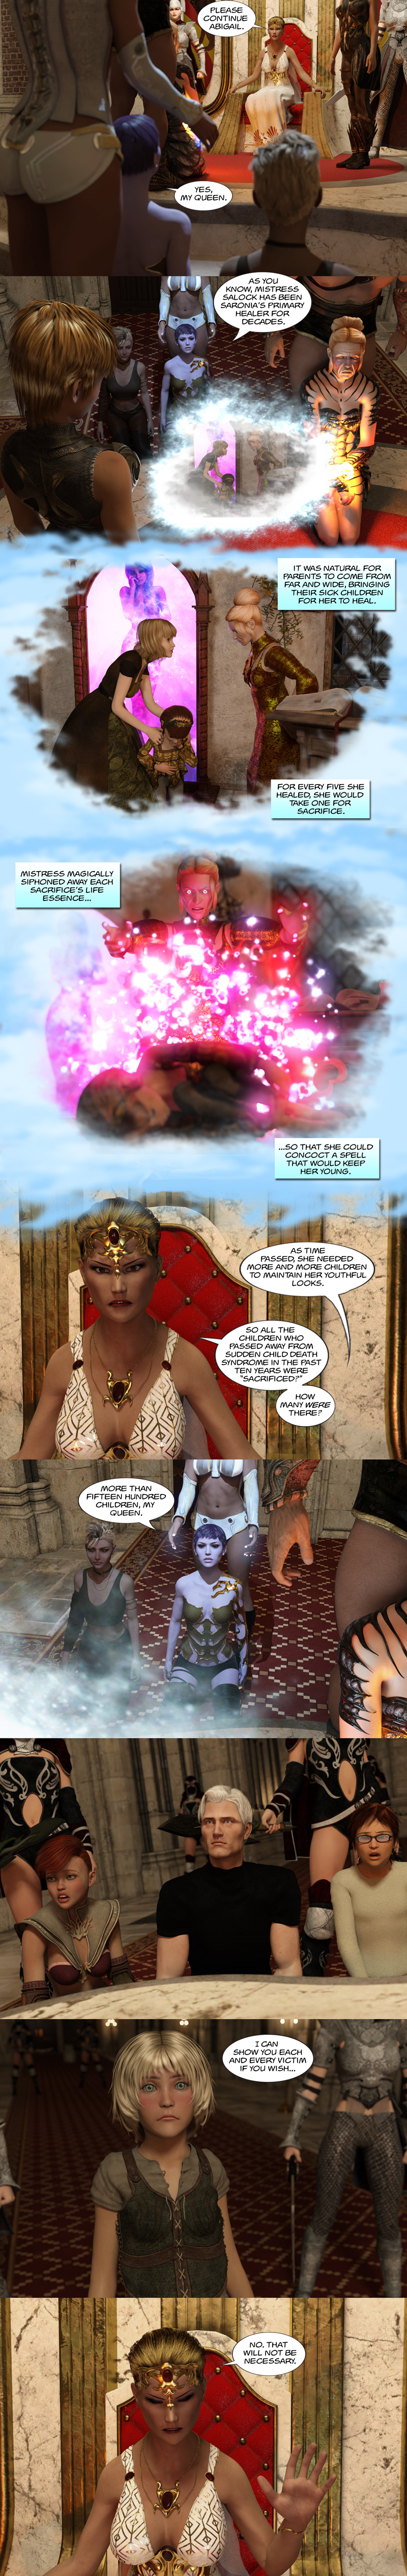 Chapter 16, page 37 – Mistress Salock's treachery revealed